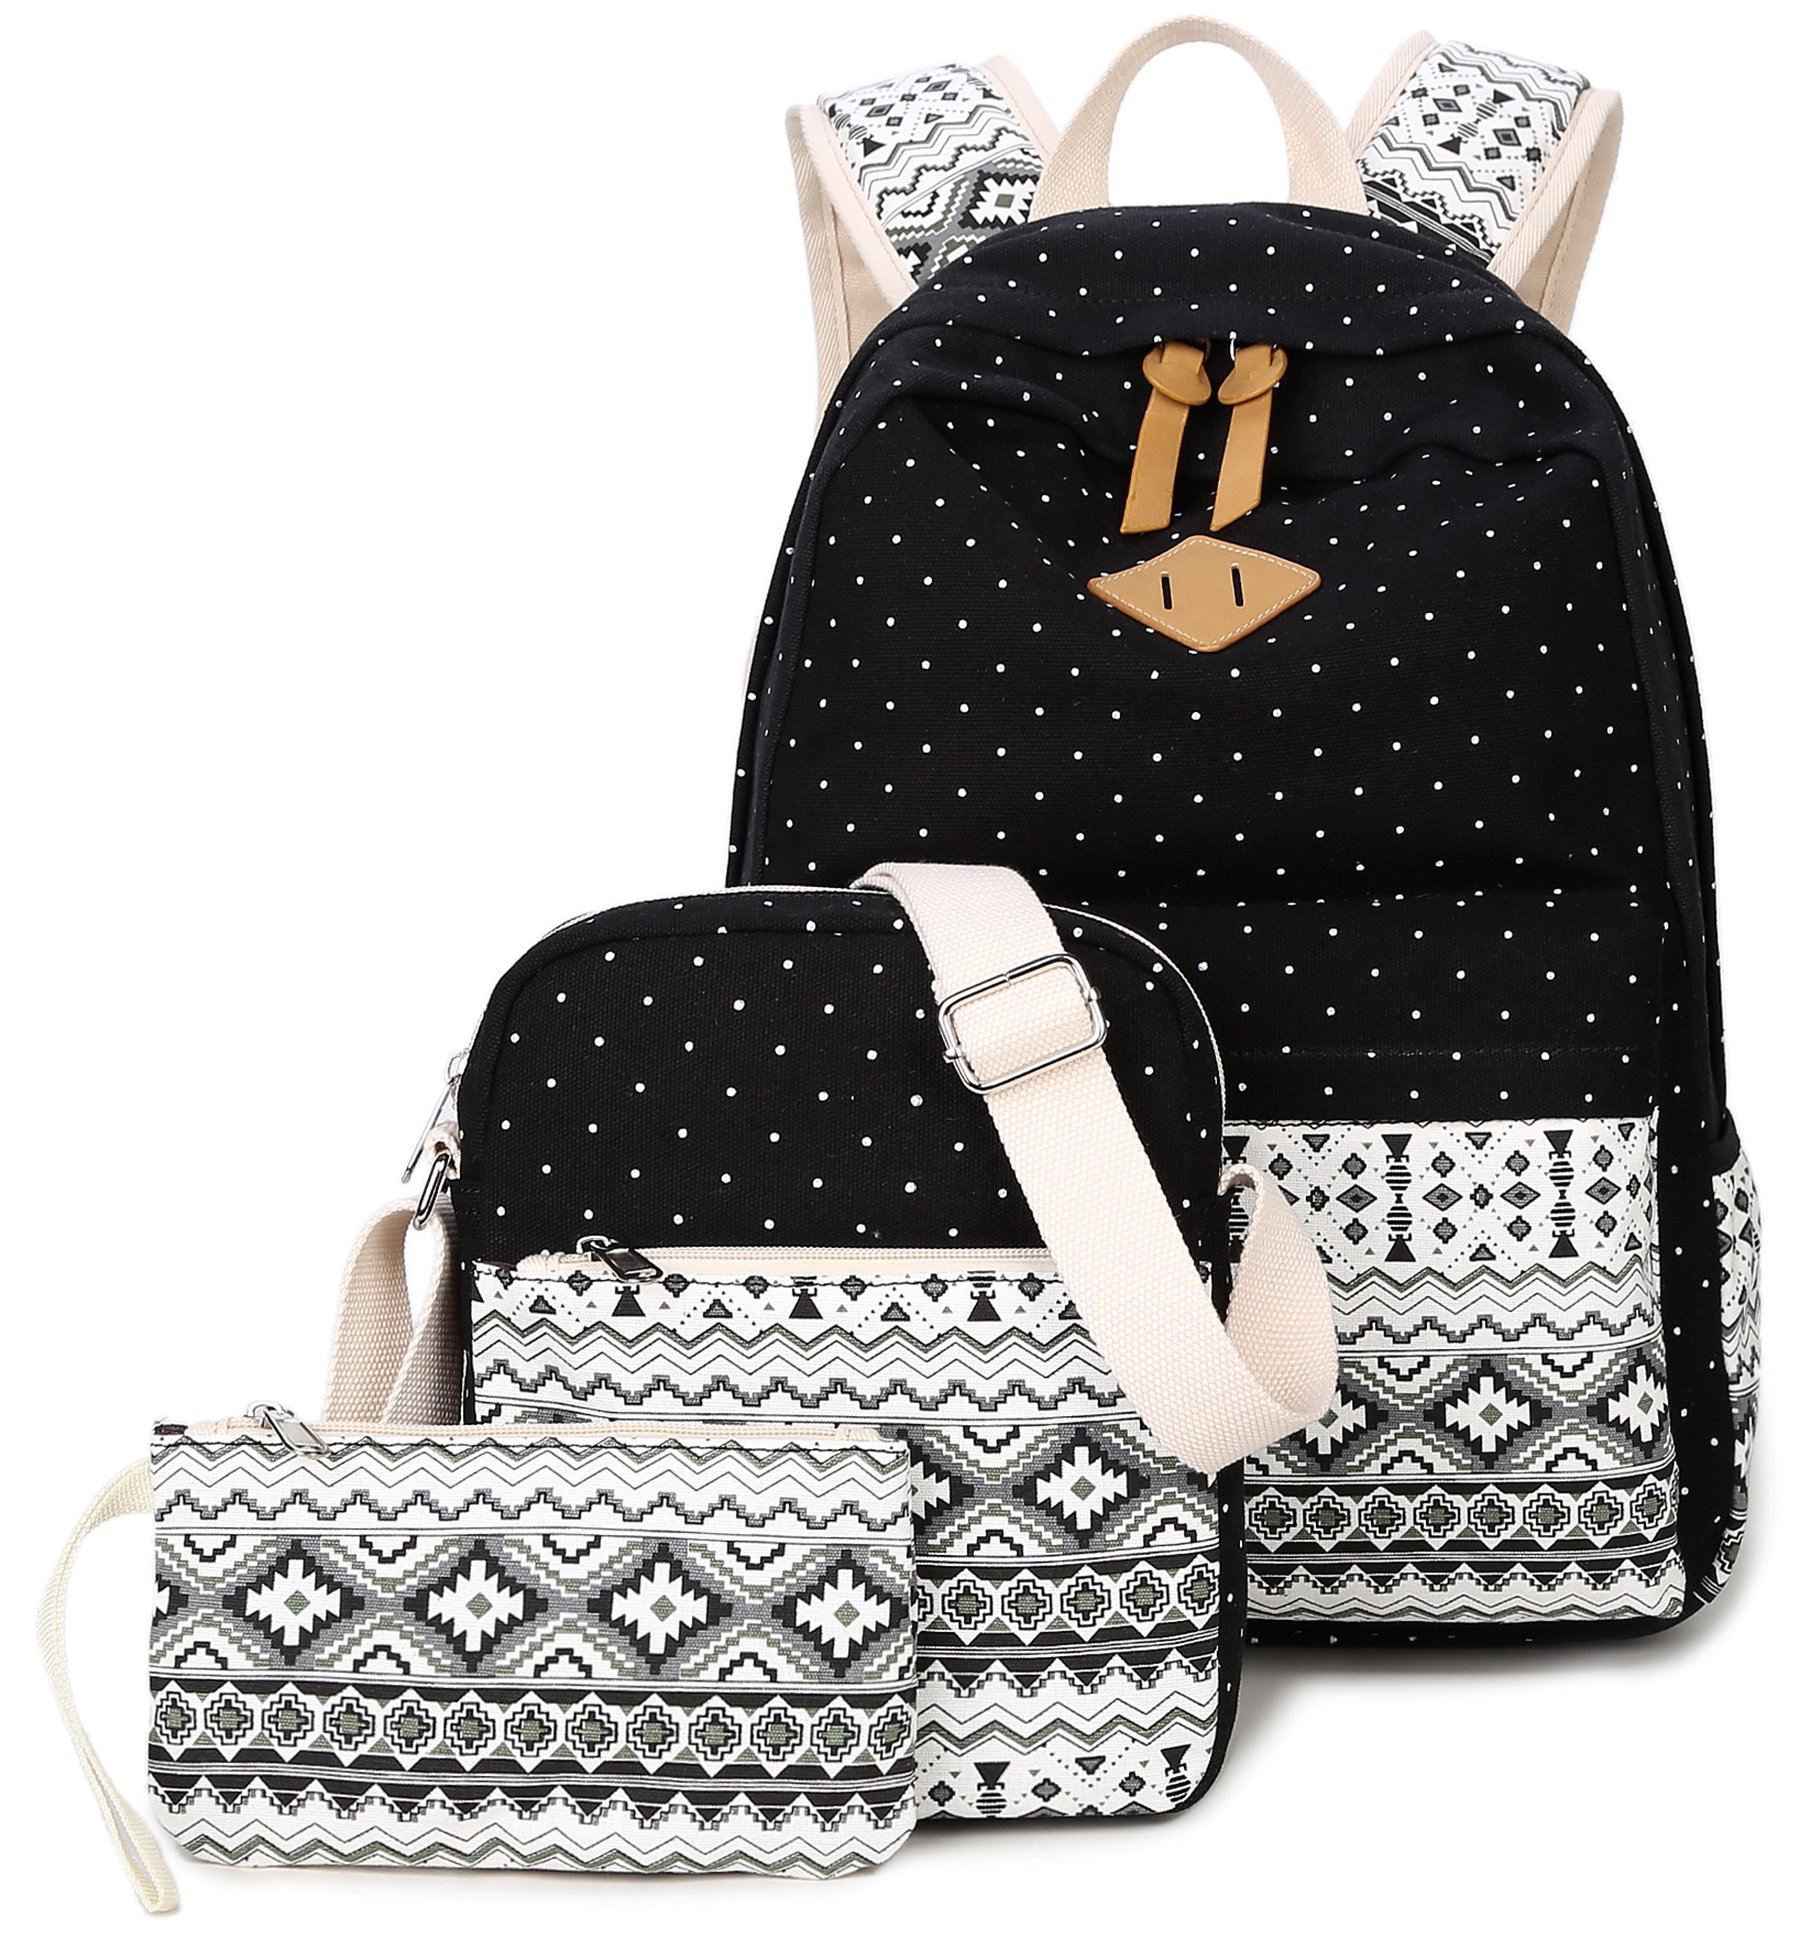 Goldwheat Fashion Dot Set Canvas School Backpack Lightweight Casual Laptop Bag Teen Girls Boys School Shoulder Bag Daypack Handbag(Black)